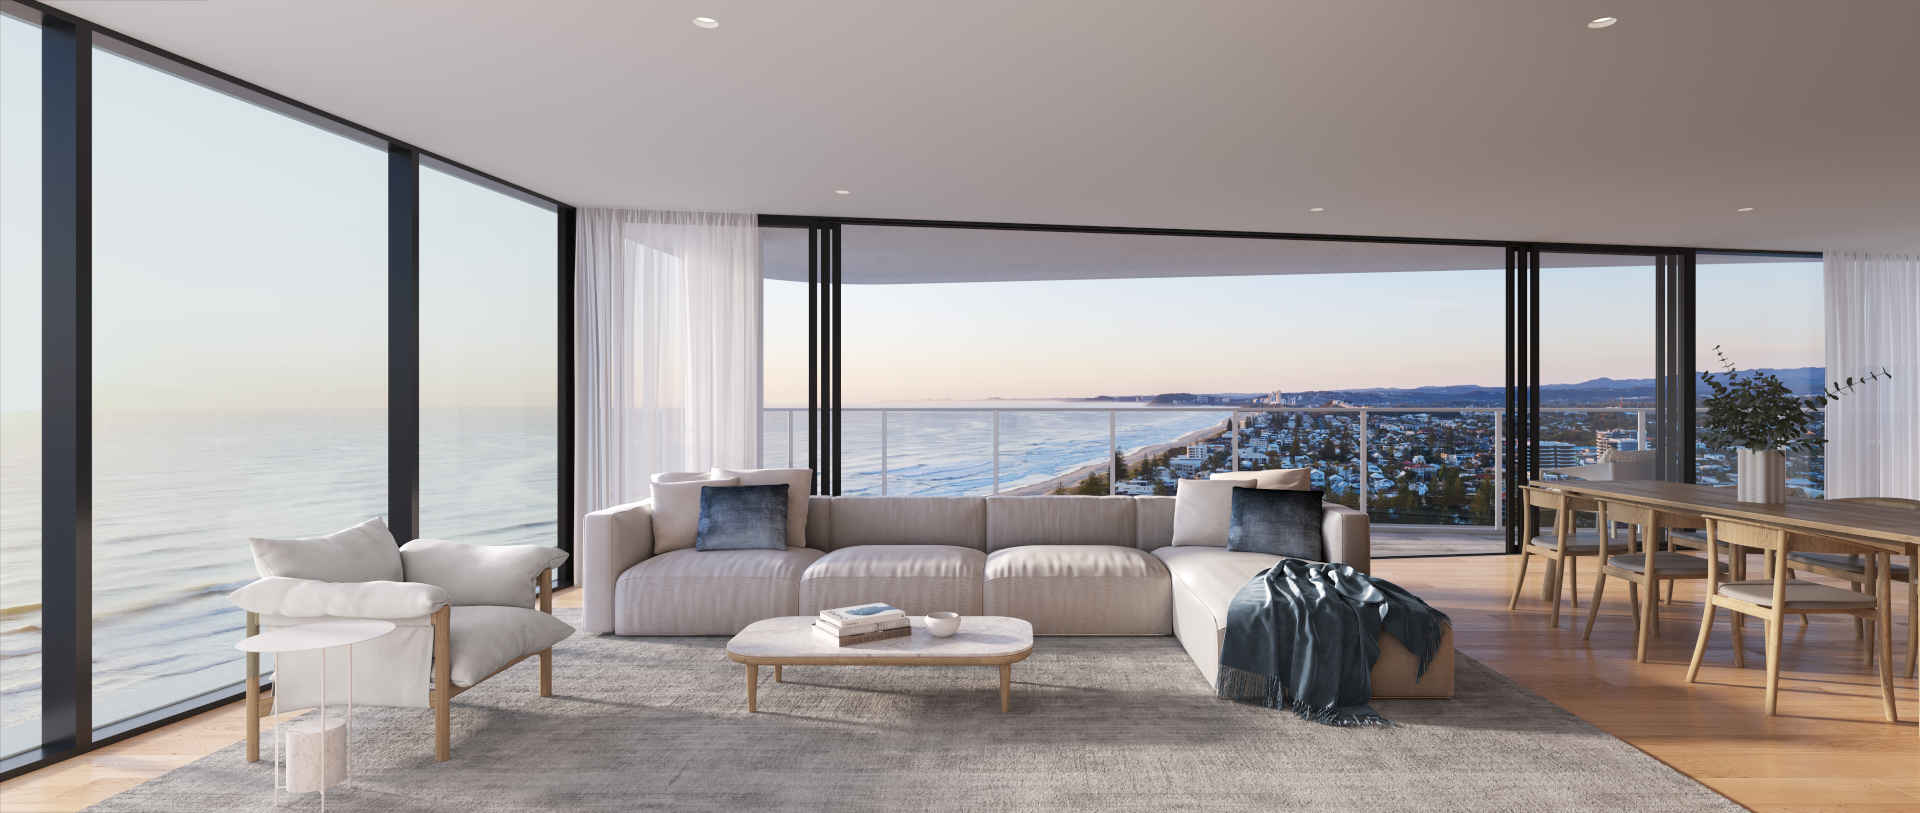 Sweeping ocean views and high levels of luxury are key elements of Mosaic's fast-selling Dawn. Images: Mosaic Property Group